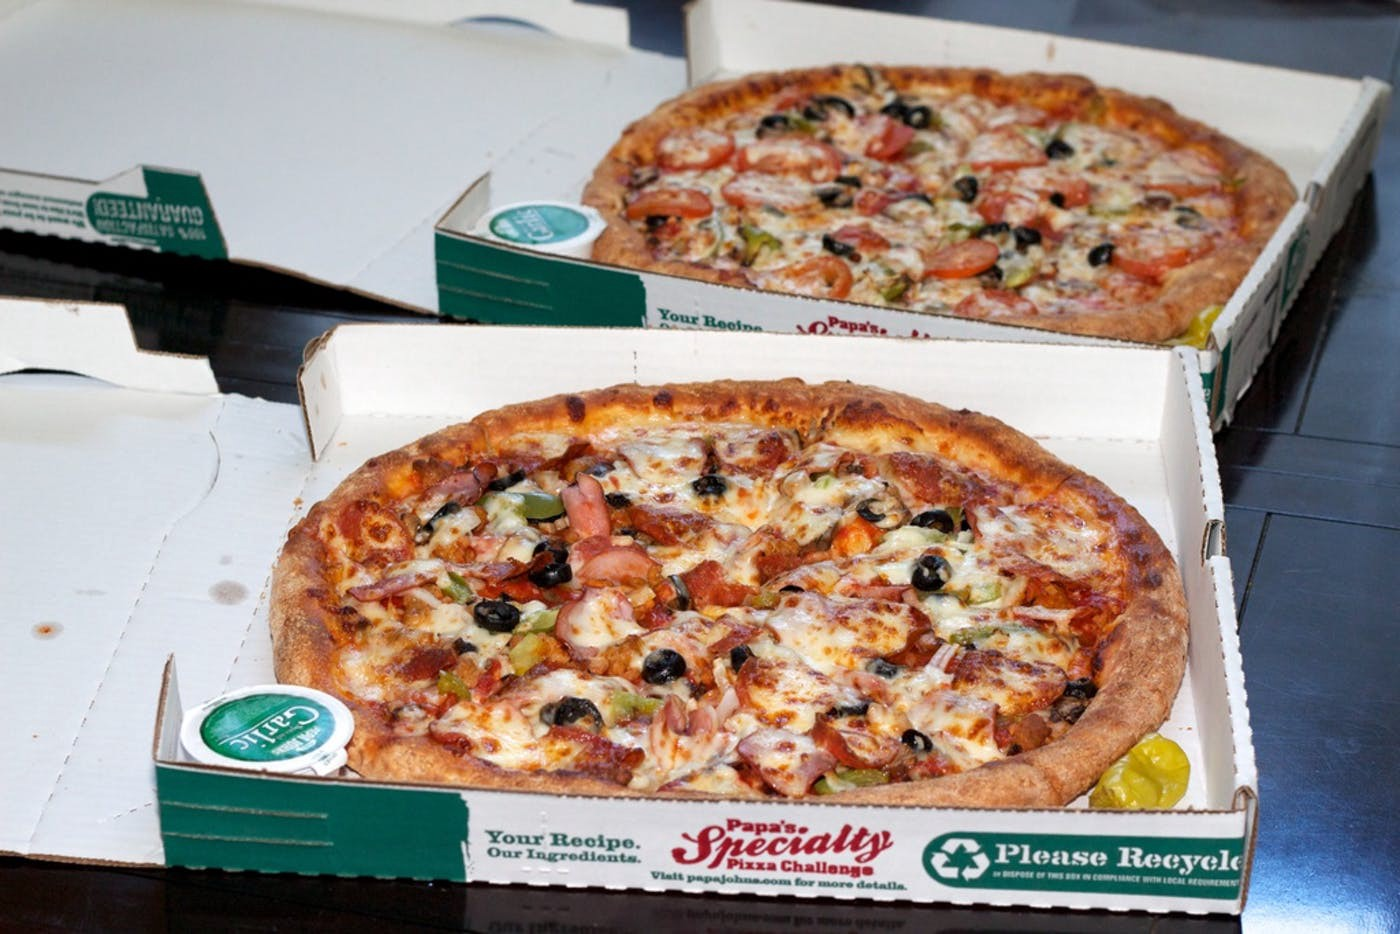 Tales from the Crypto-Keeper: The Two Hundred Million Dollar Pizzas